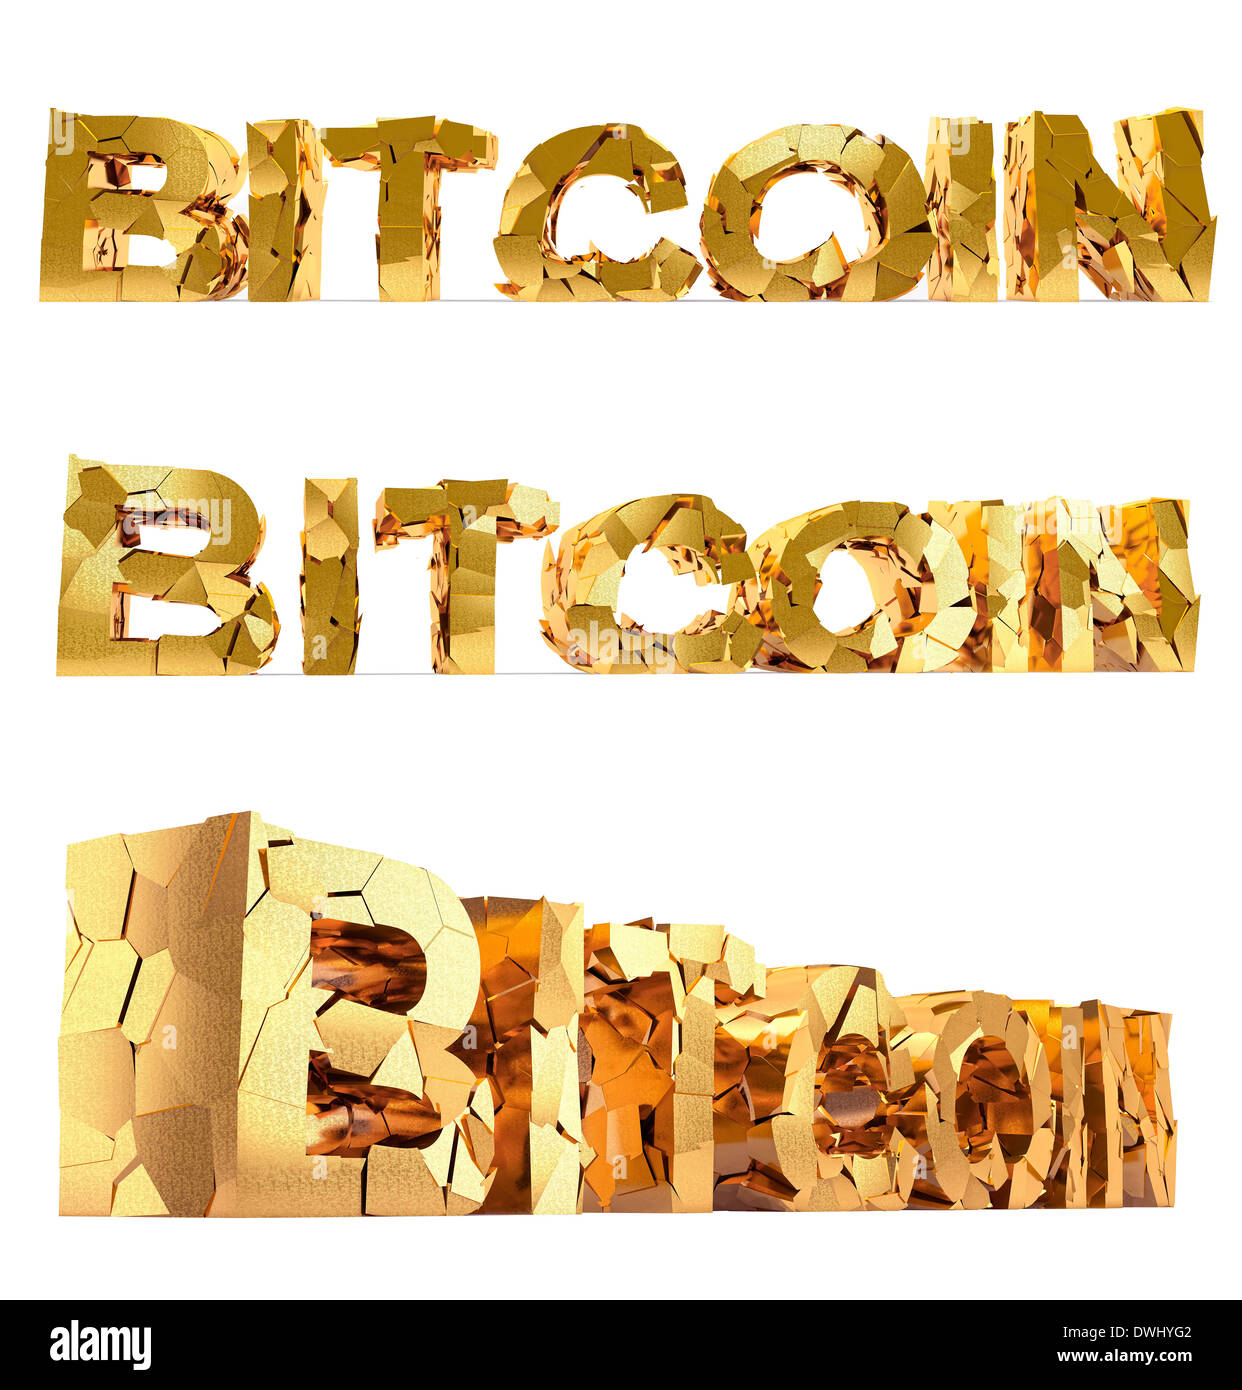 Bitcoin - damaged text - isolated on white - Stock Image